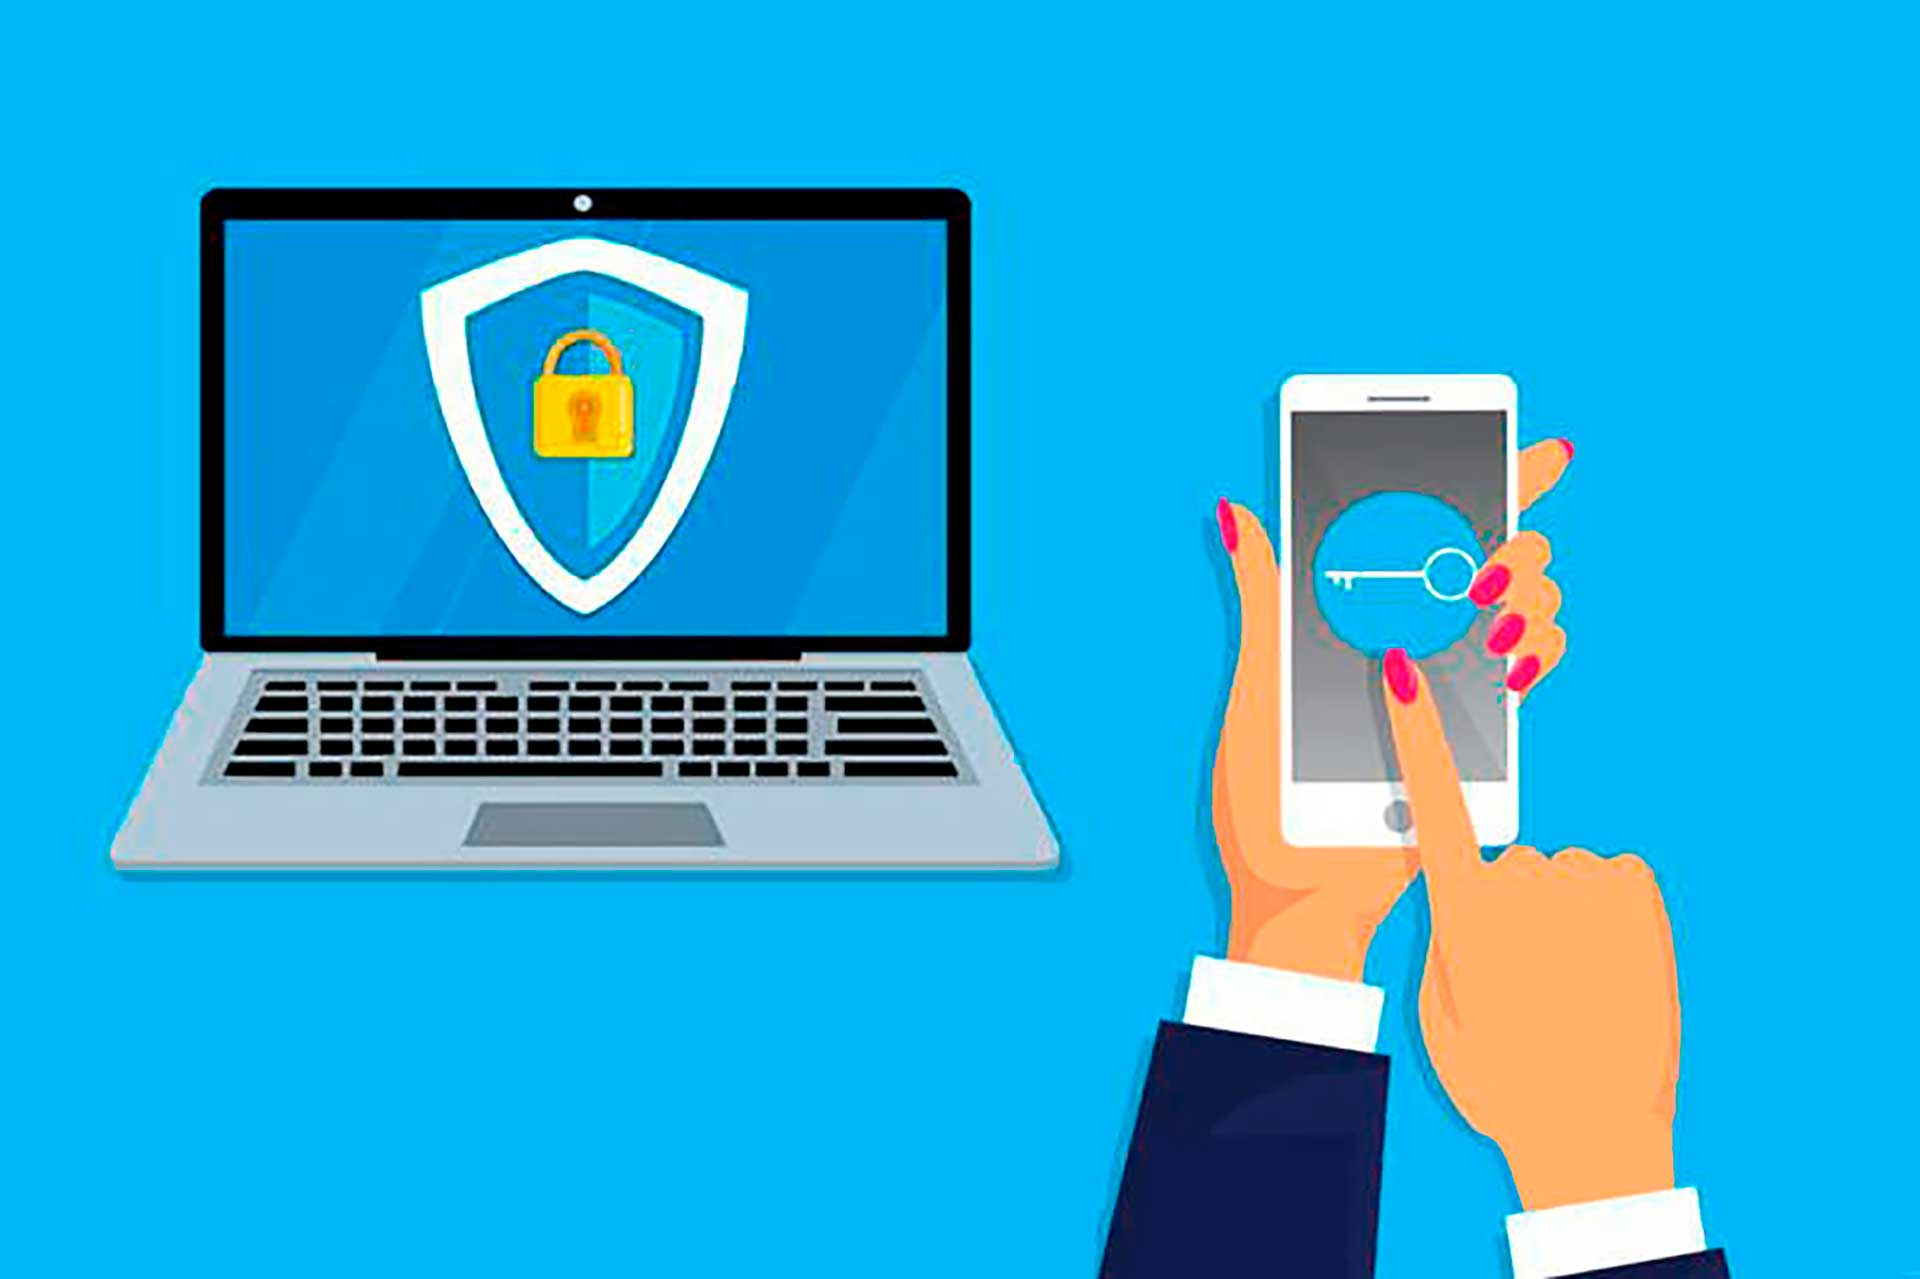 Laptop screen with security icon; hands holding mobile phone